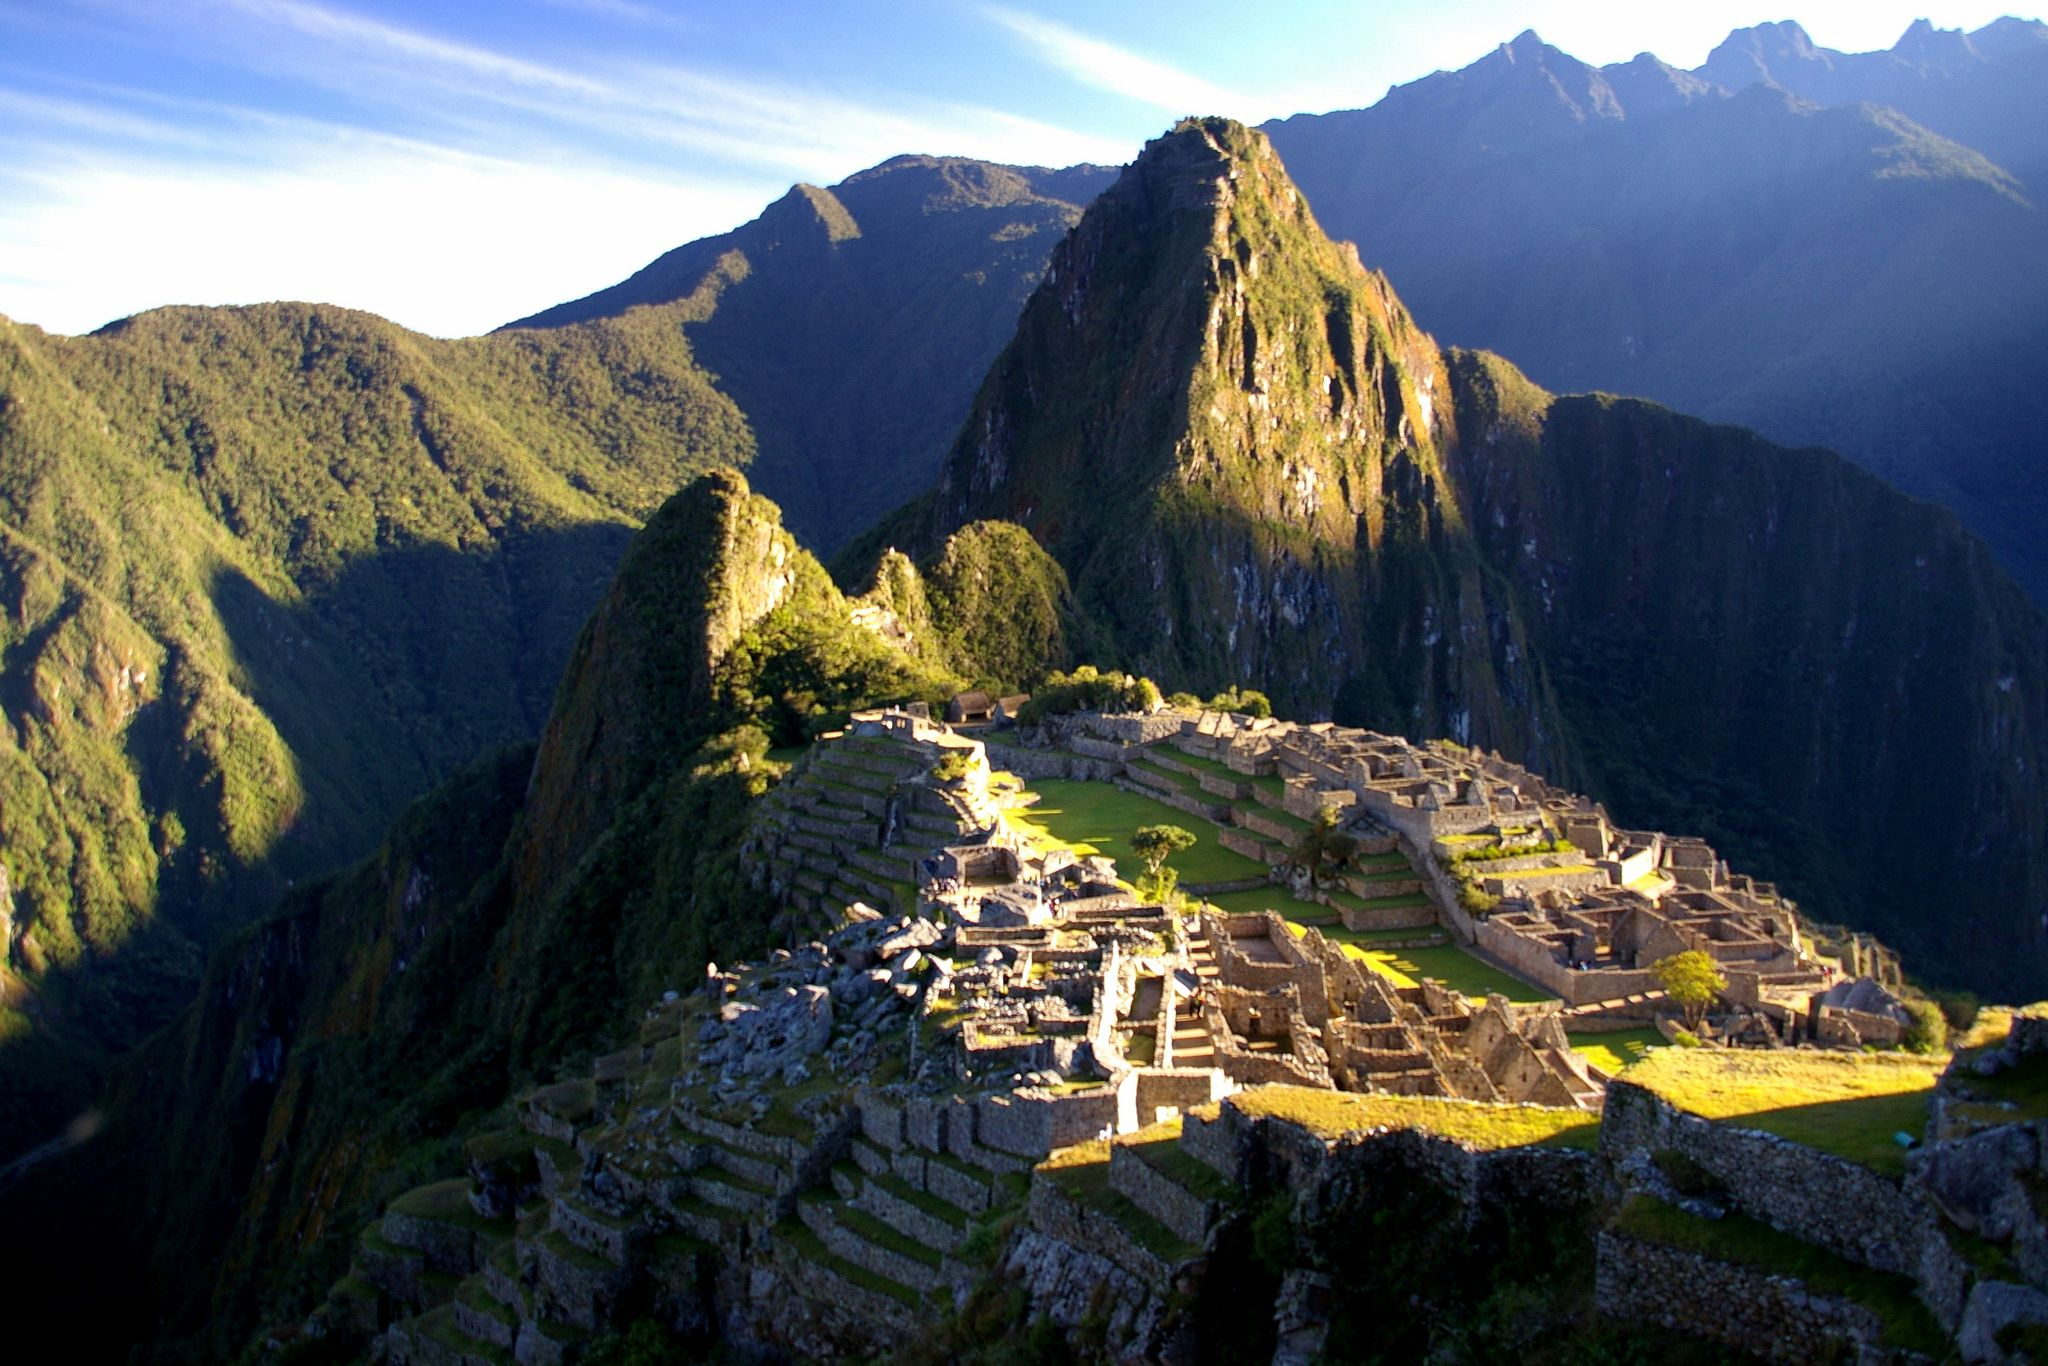 https://flic.kr/p/iEeiyc | Machu Picchu at dawn 5